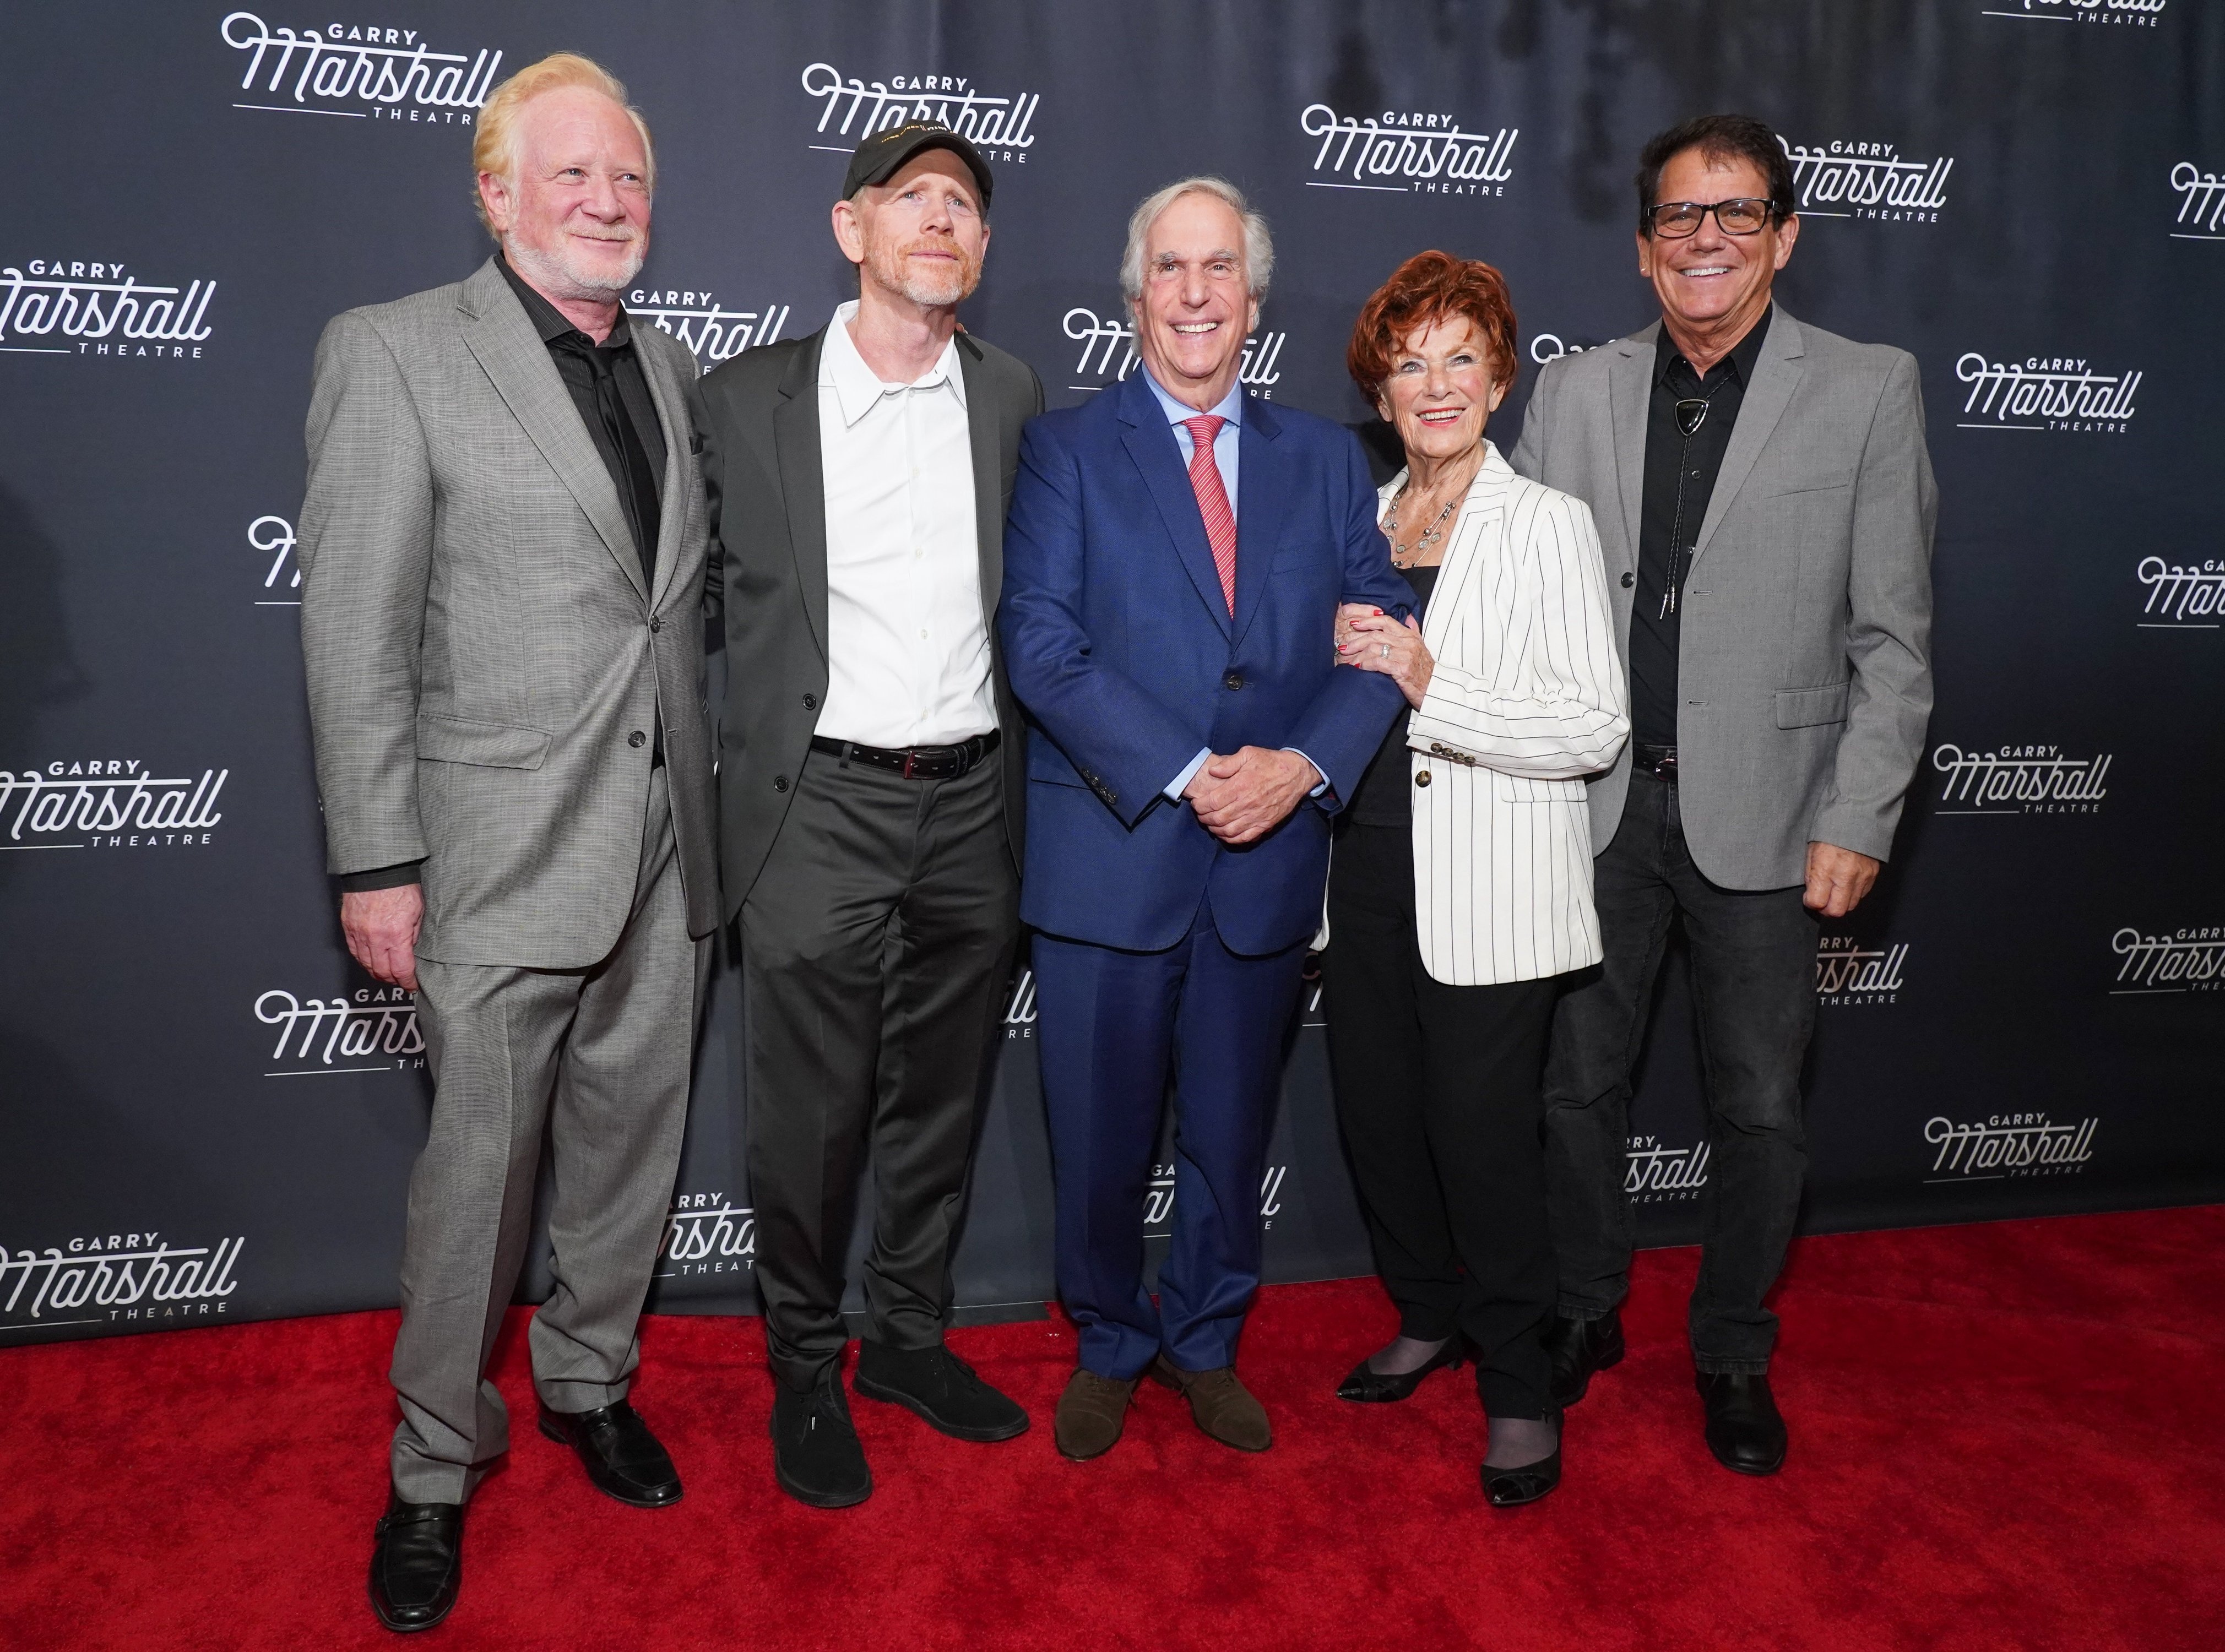 """Don Most, Ron Howard, Henry Winkler, Marion Ross and Anson Williams attend Garry Marshall Theatre's 3rd Annual Founder's Gala Honoring Original """"Happy Days"""" Cast on November 13, 2019   Photo: Getty Images"""